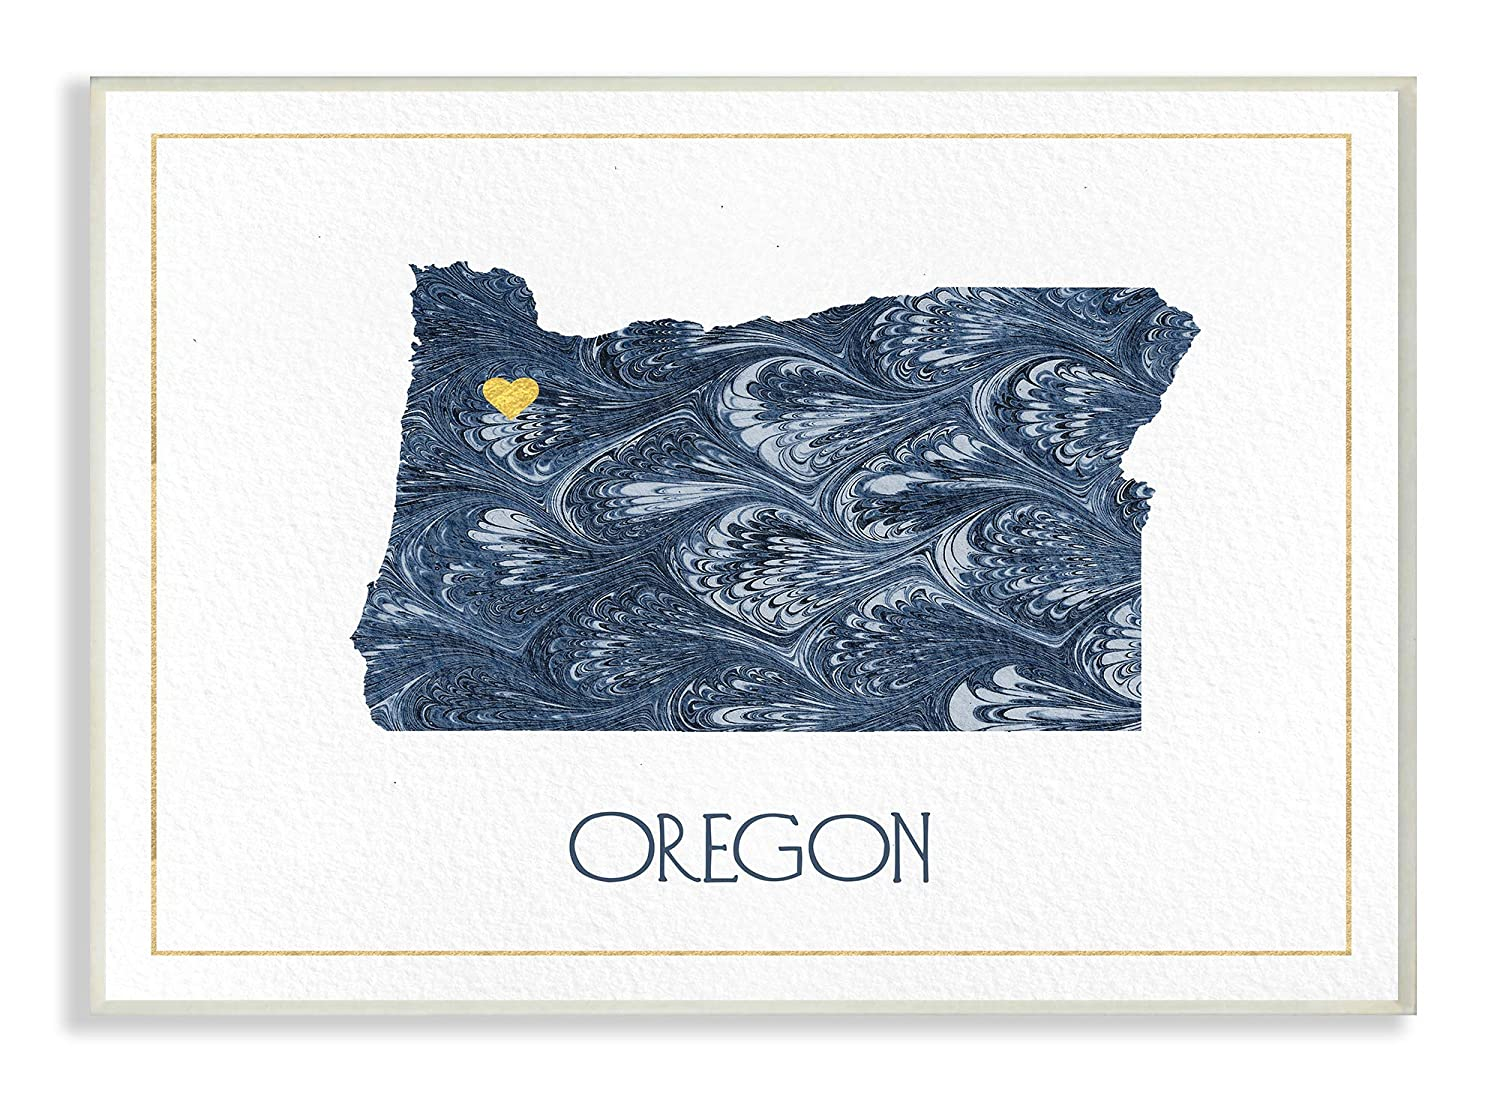 The Stupell Home Decor Oregon Minimal Blue Marbled Paper Silhouette Wall Plaque Art, 10 x 15, Multi-Color